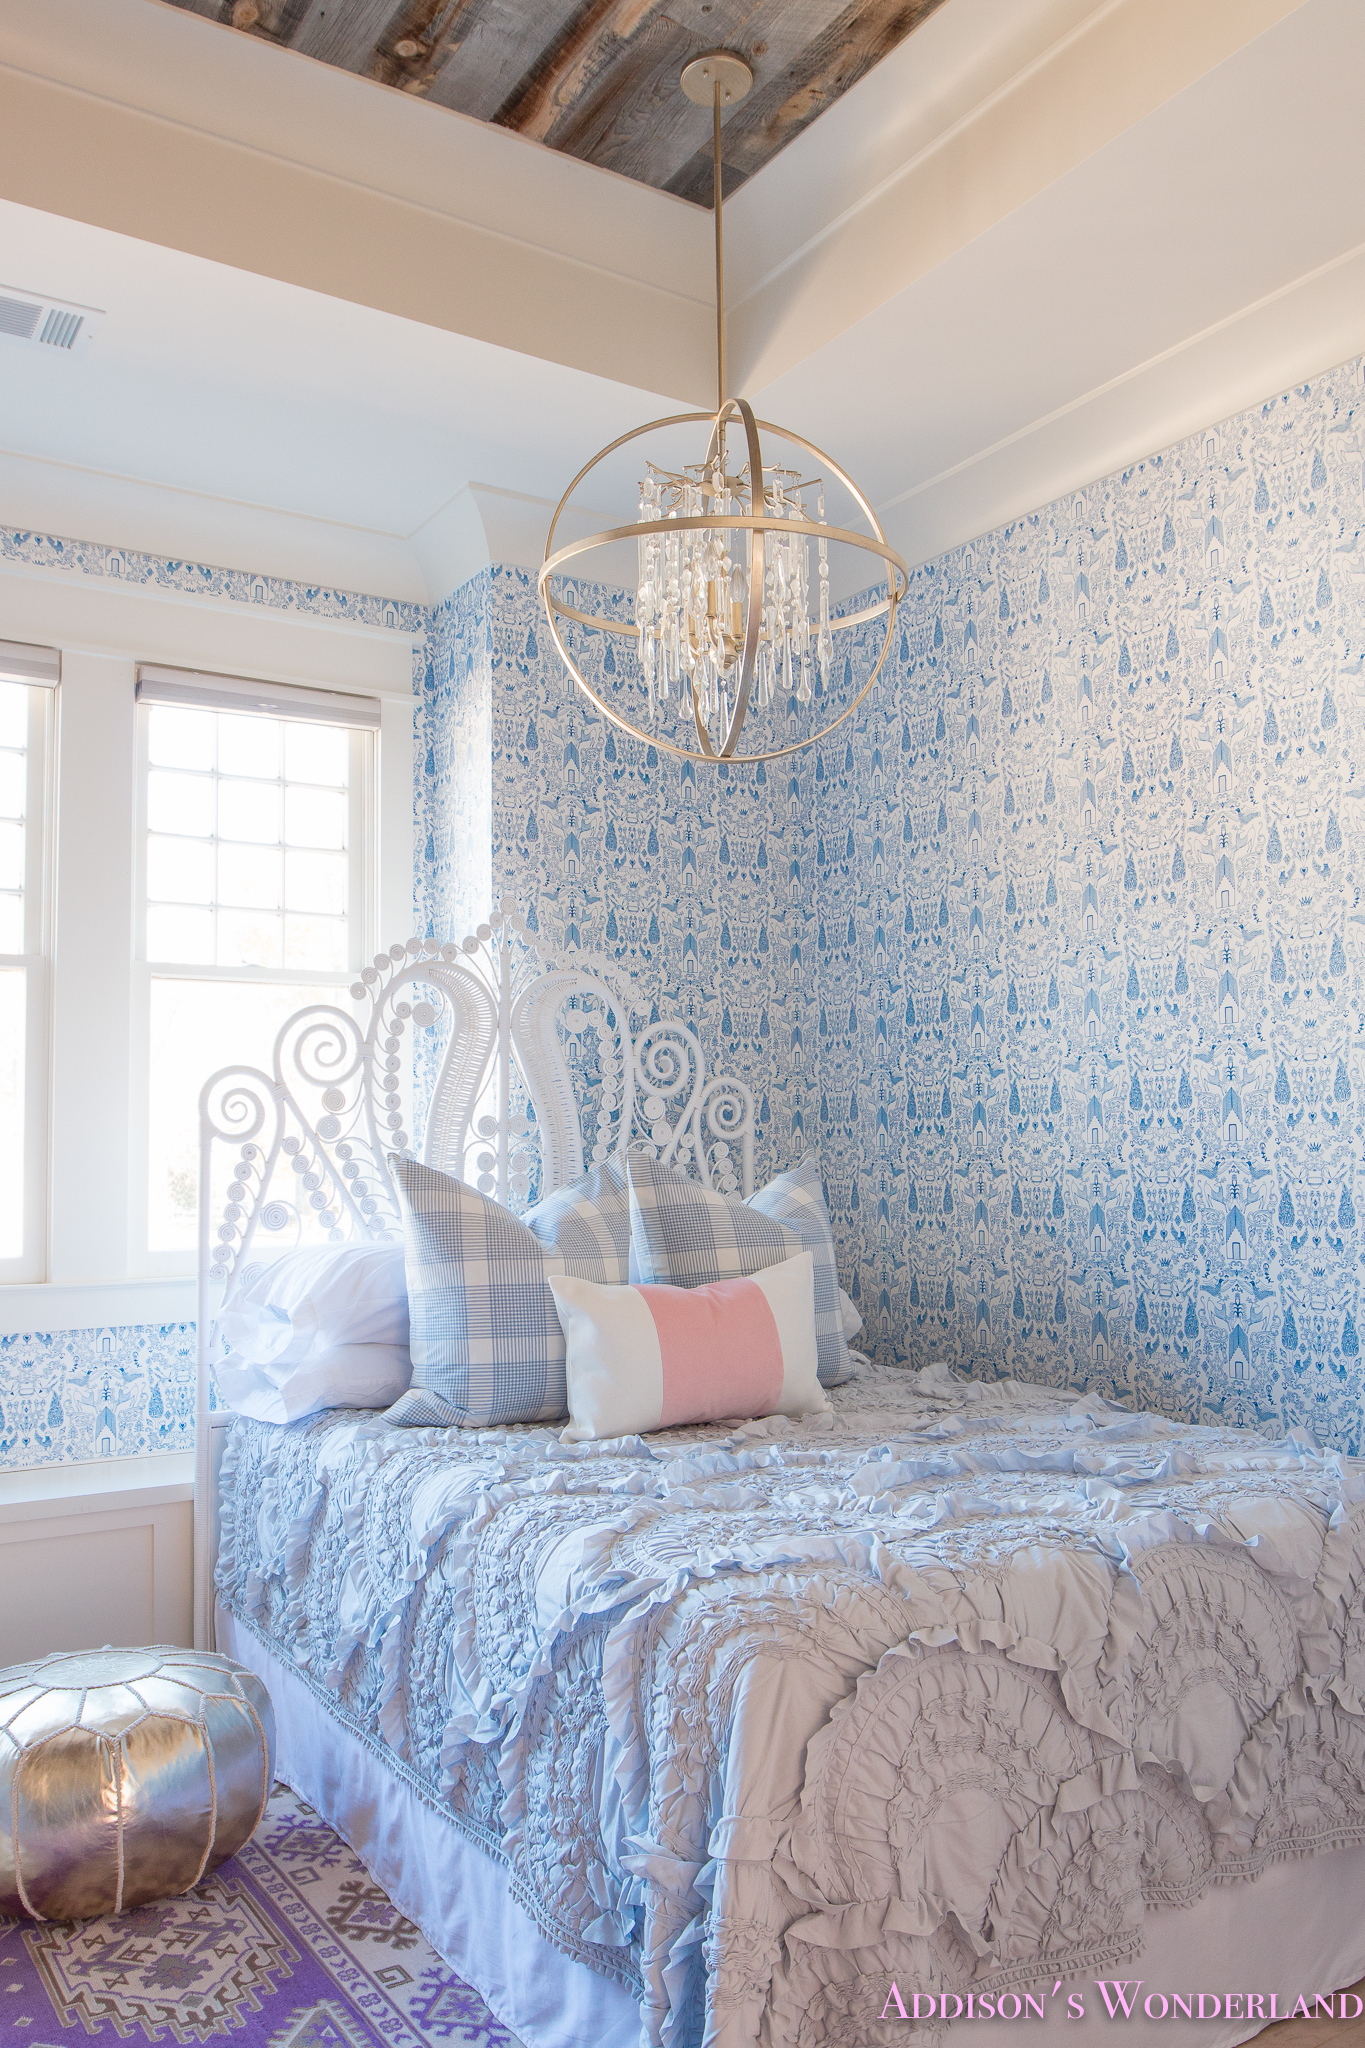 Our New Caitlin Wilson Pillows + Update on Winter\'s Blue & White Bedroom